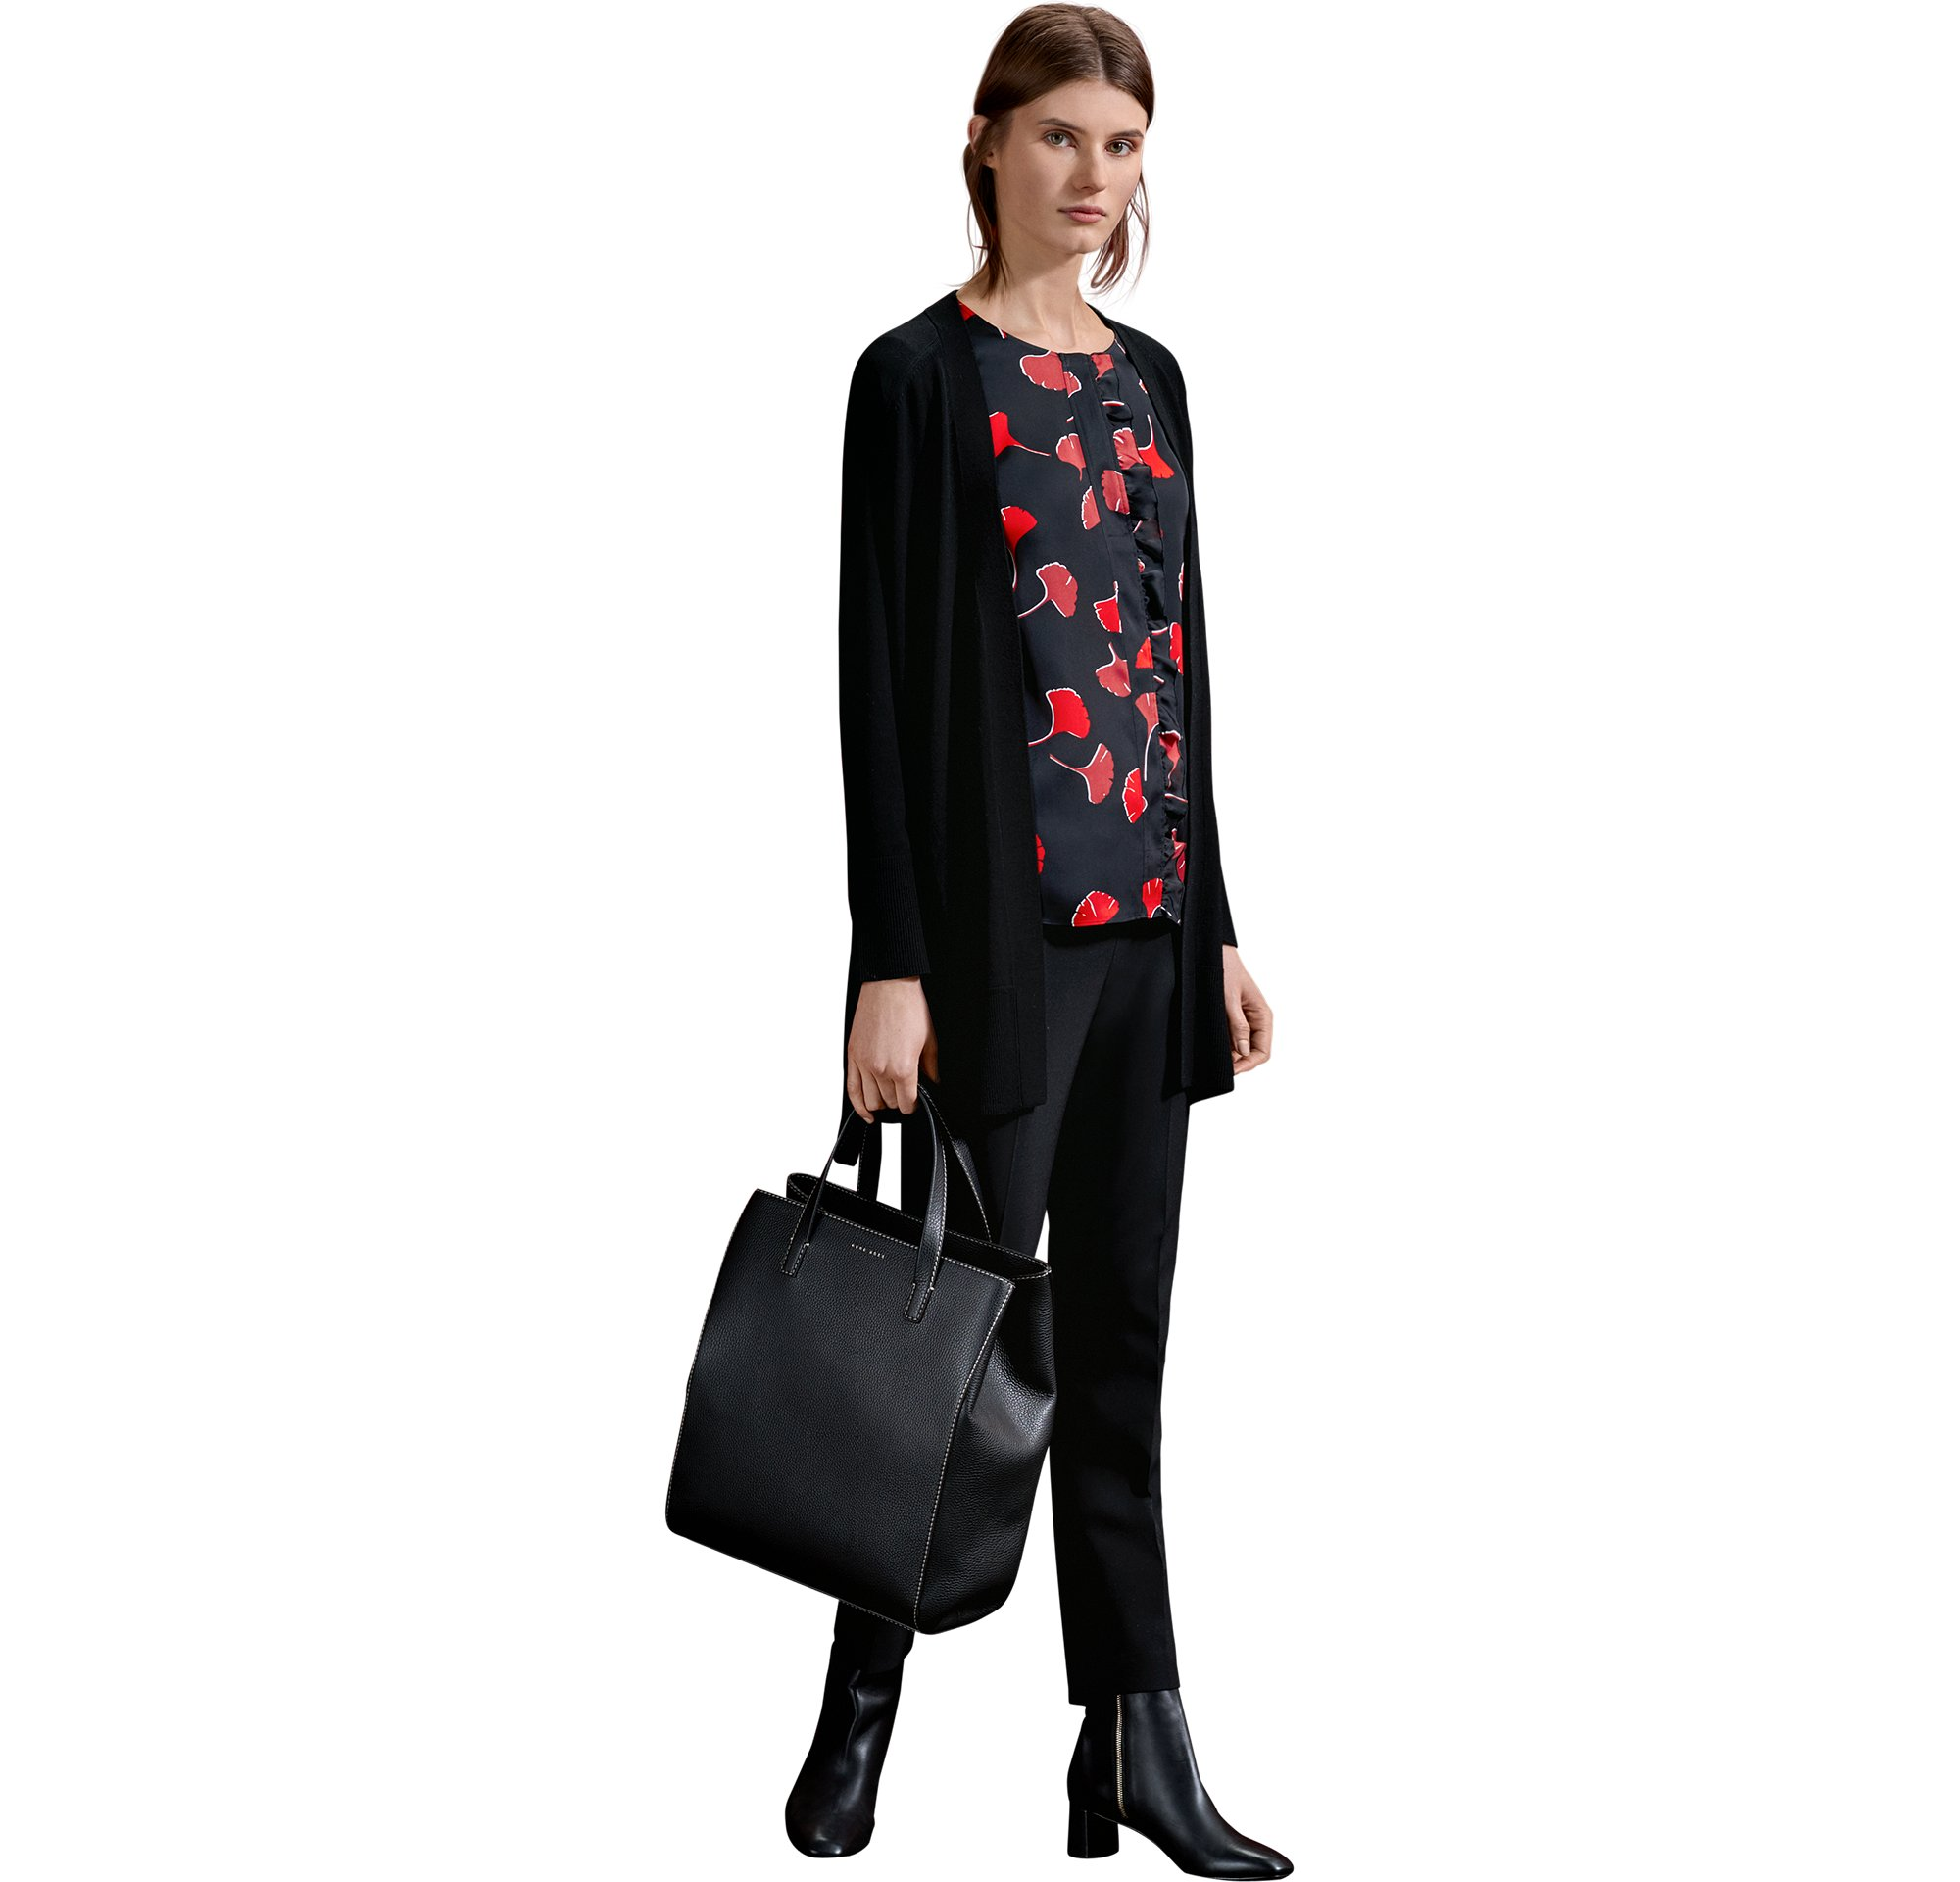 BOSS_Women_CTG_FW17_Look_22,